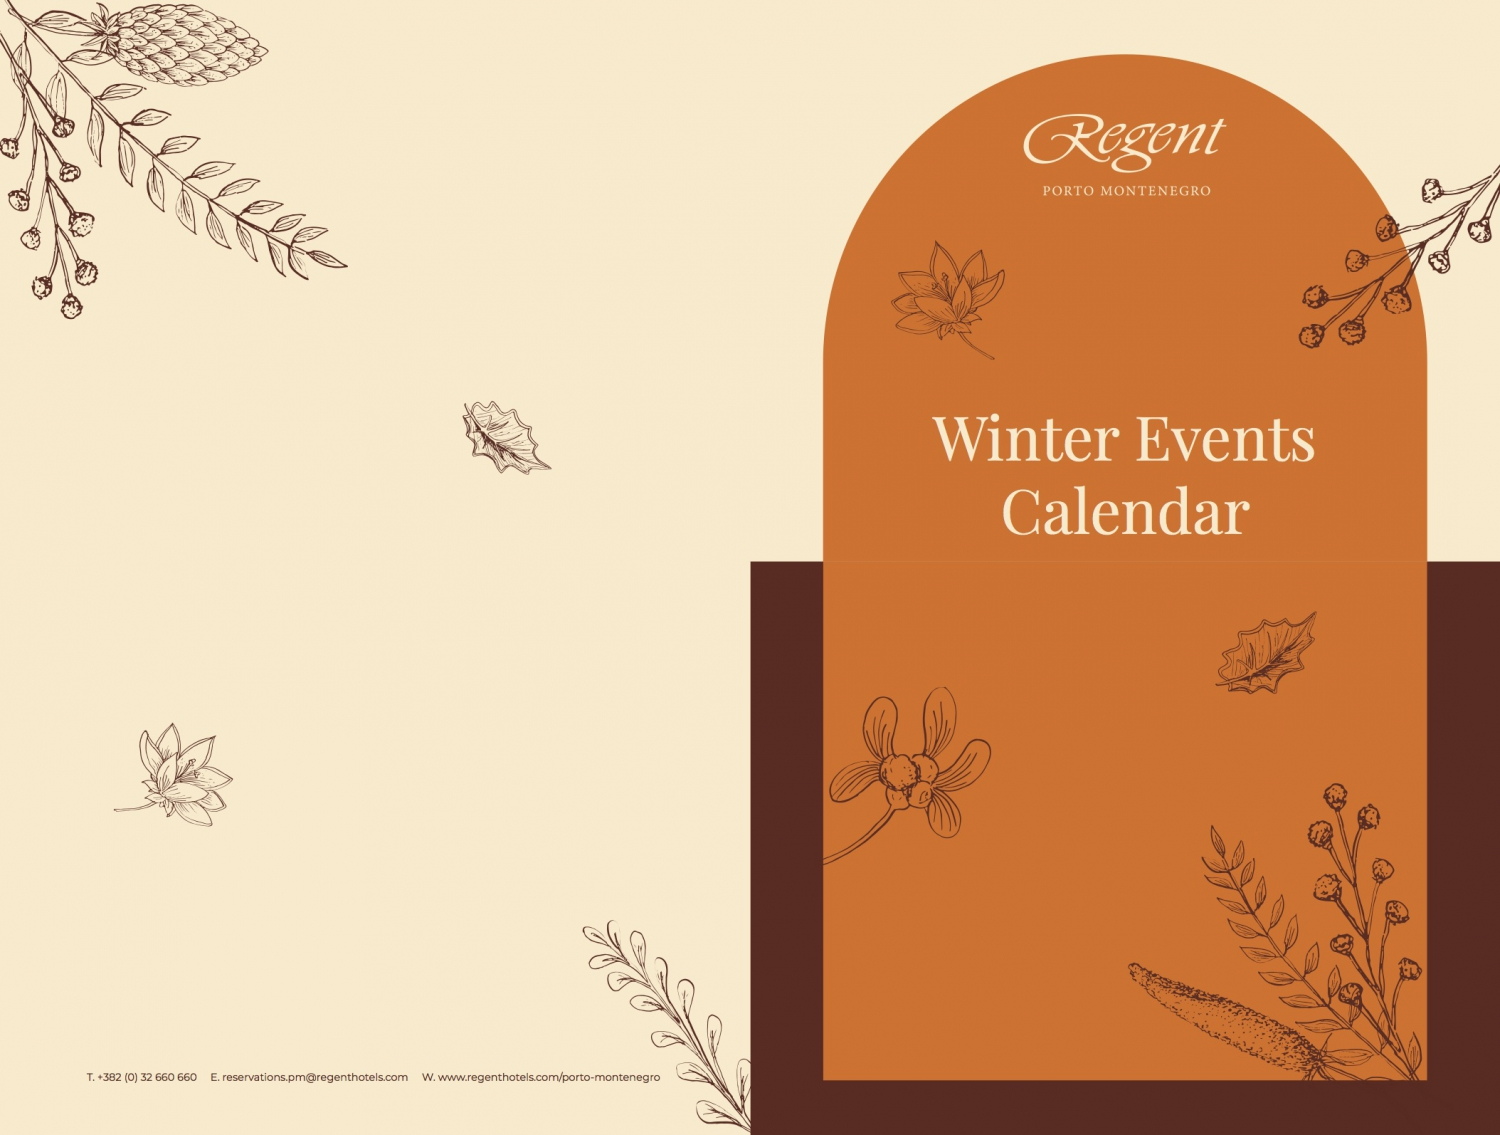 Winter Events Calendar